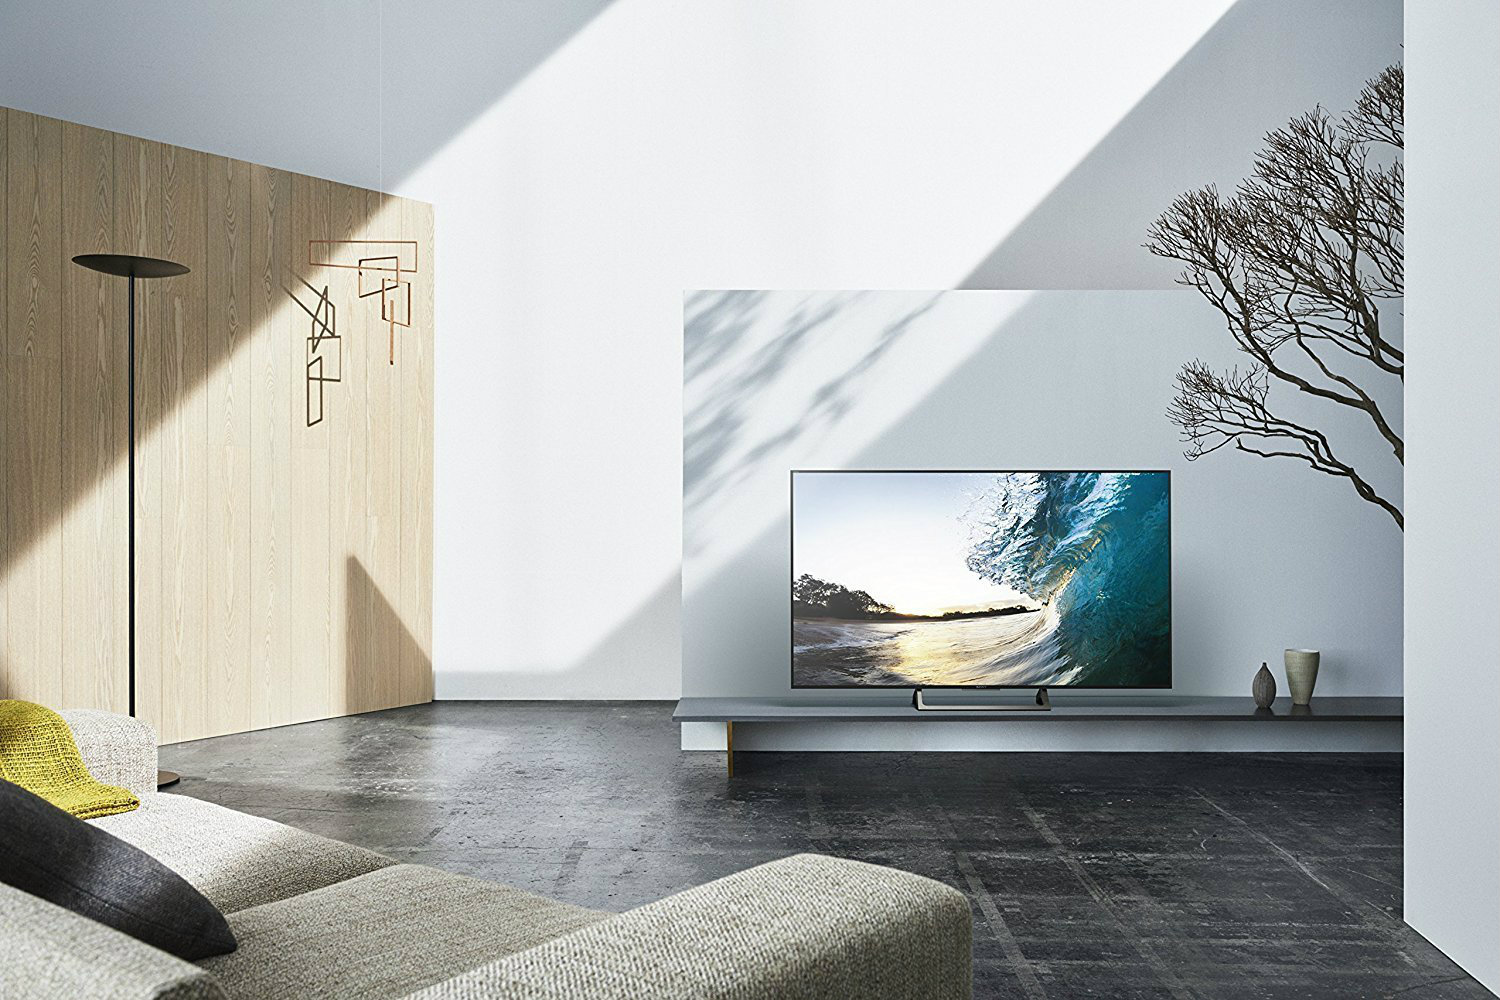 The Best 4k Tv Deals On Lg Samsung Sony And More